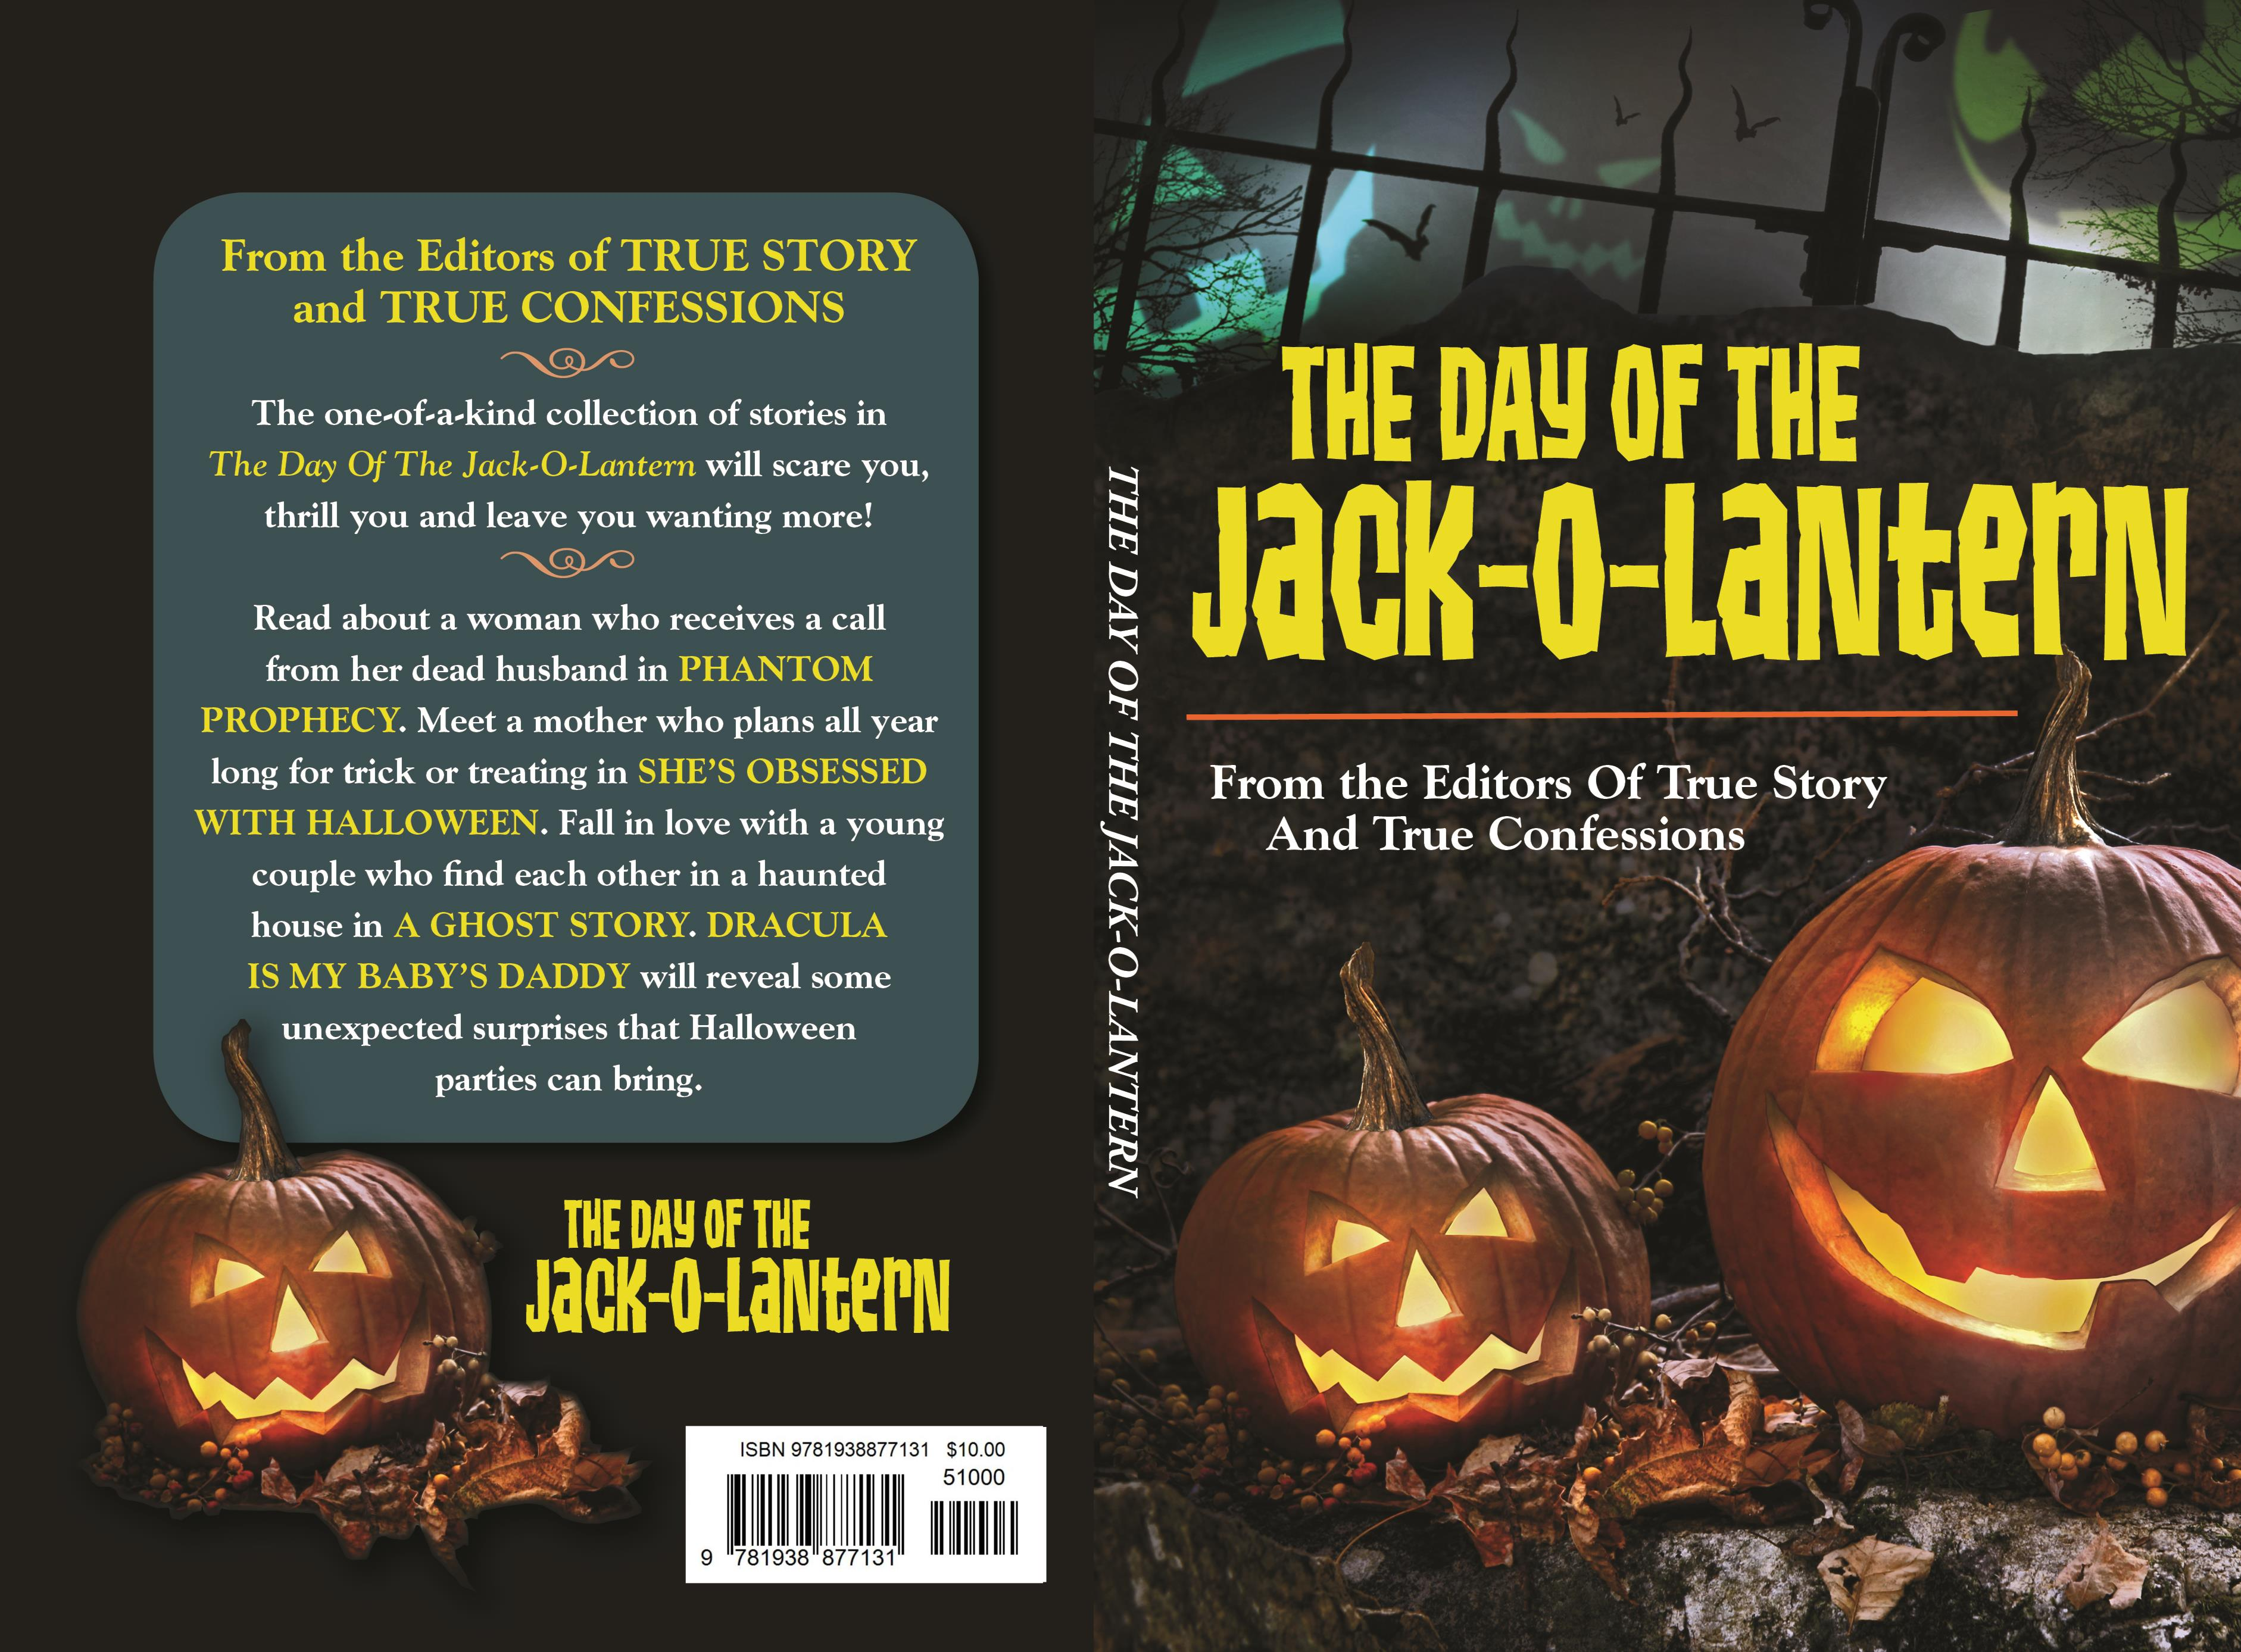 The Day Of The Jack-O-Lantern cover image